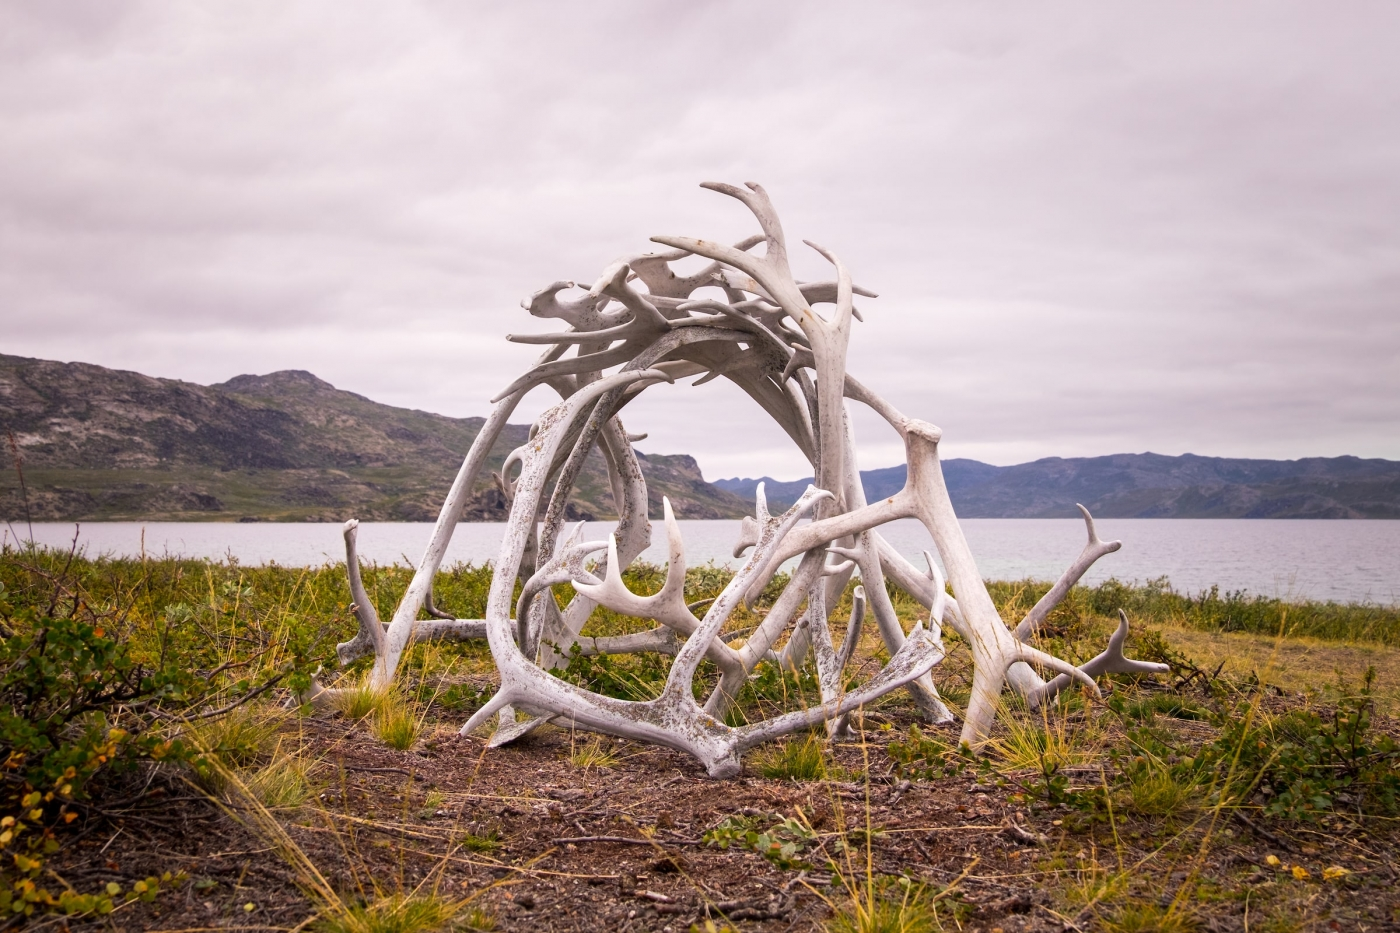 Sculpture made of reindeer antlers - Day 2 of Arctic Circle Trail. Photo by Lisa Germany.